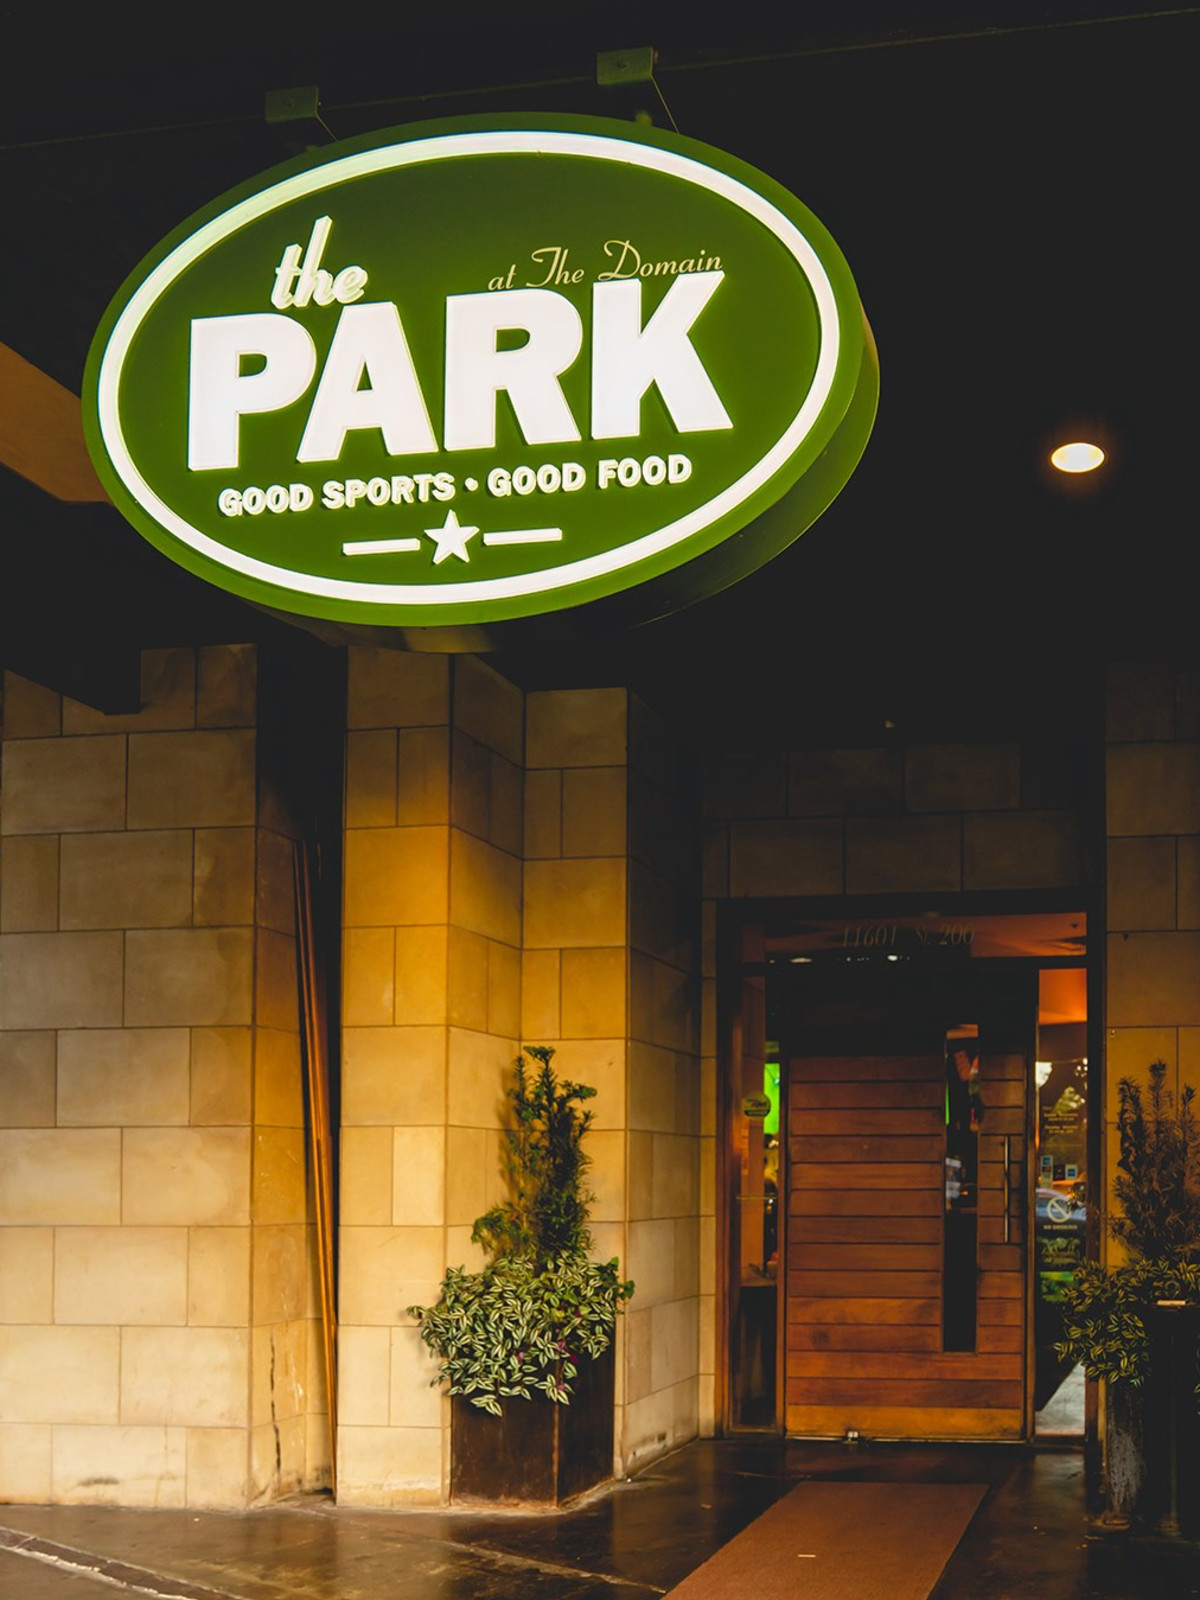 The Park at the Domain sign